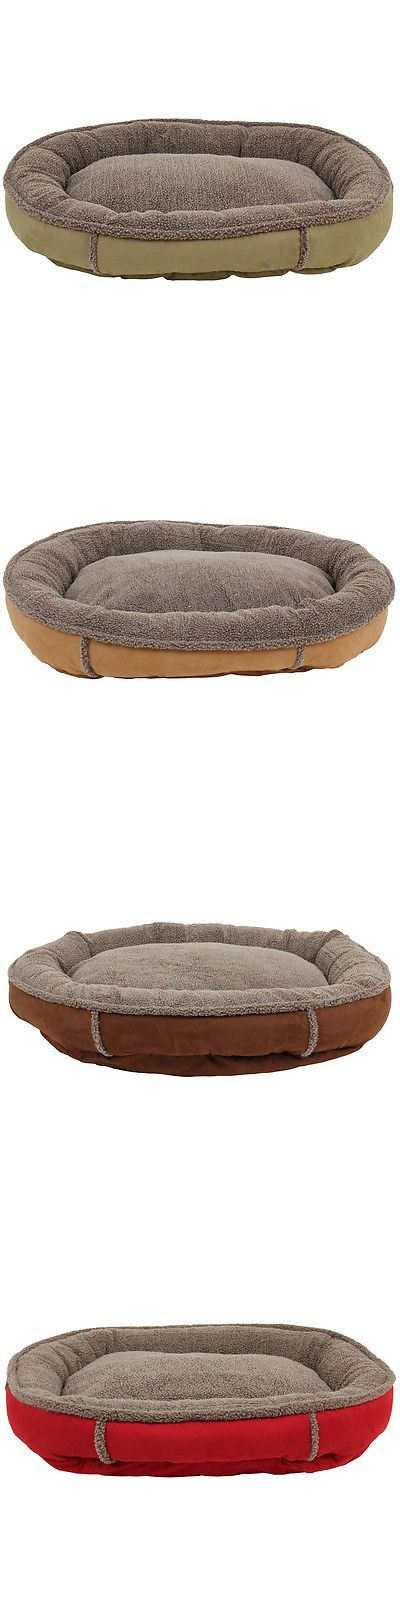 Beds 20744: Carolina Pet Co. Comfy Cup Faux Suede Round Bolster Dog Bed BUY IT NOW ONLY: $98.59